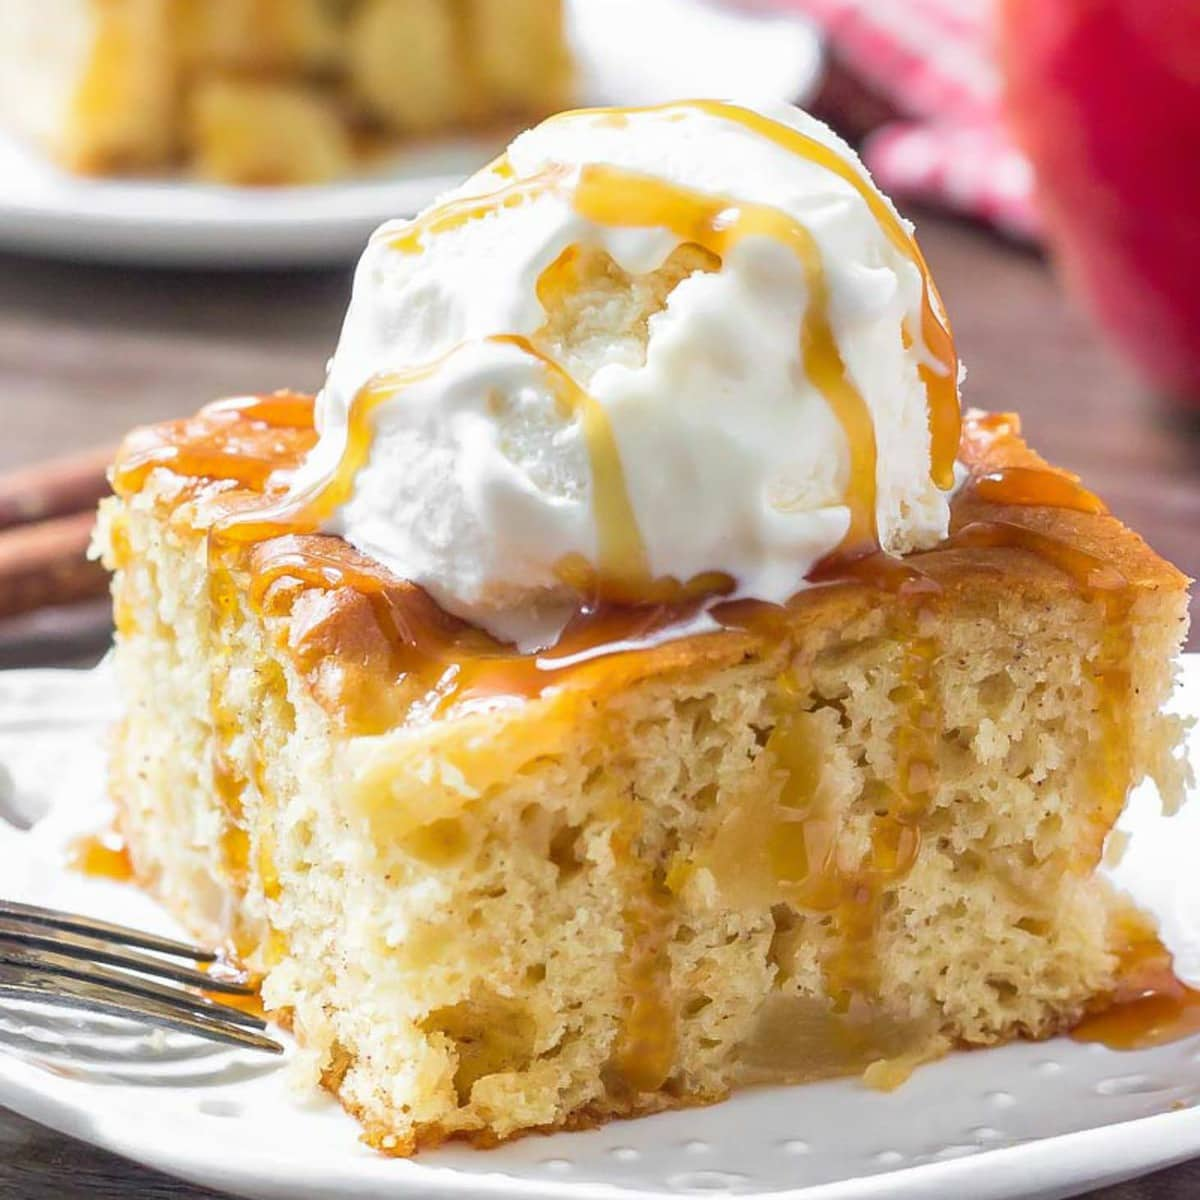 a slice of Apple Cake topped with ice cream and caramel sauce